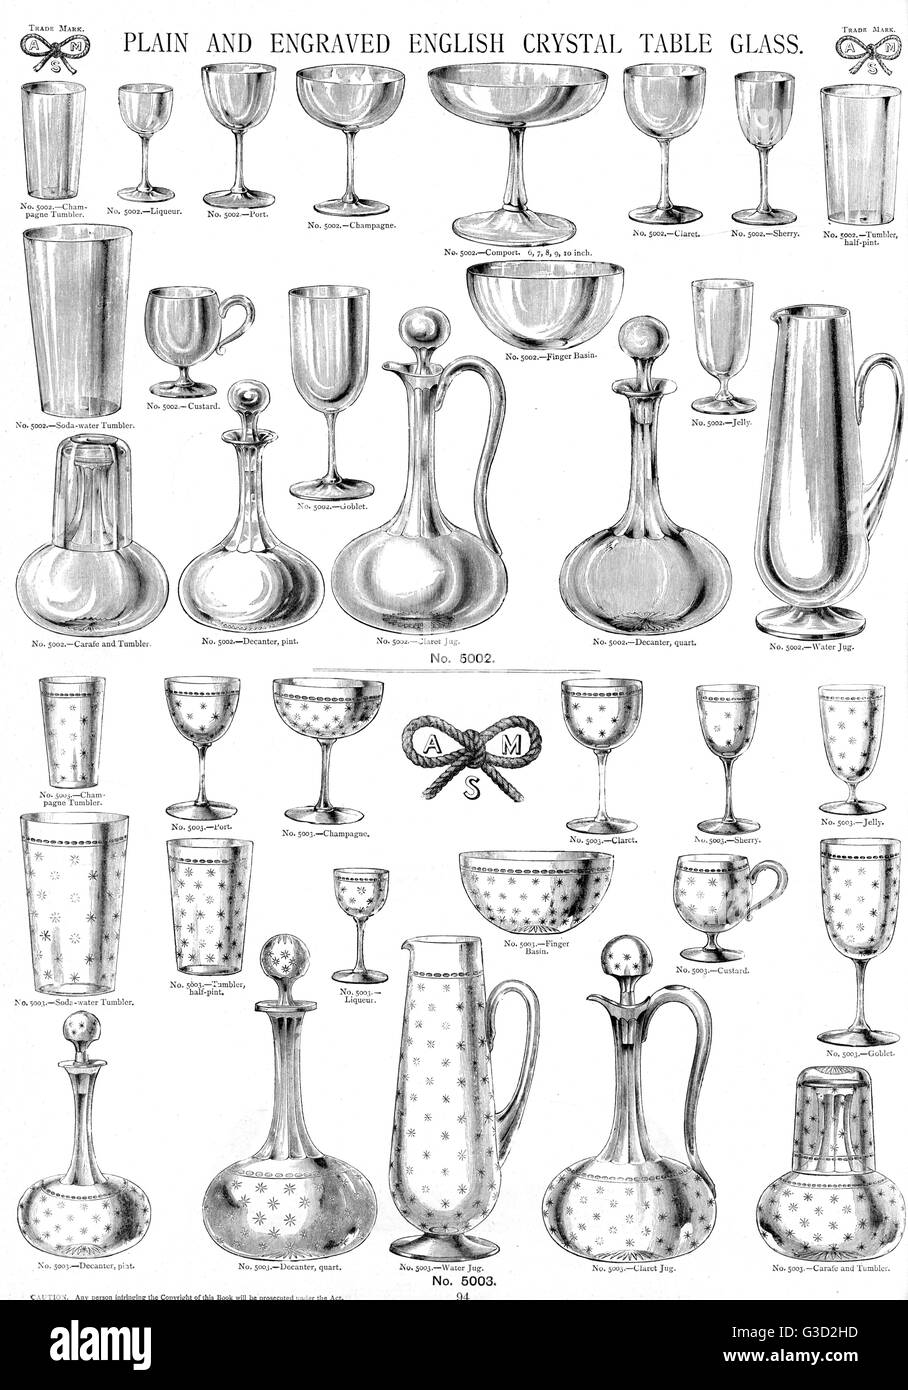 Plain and Engraved English Crystal Table Glass, Plate 94, showing jugs, decanters, glasses and other items.     - Stock Image